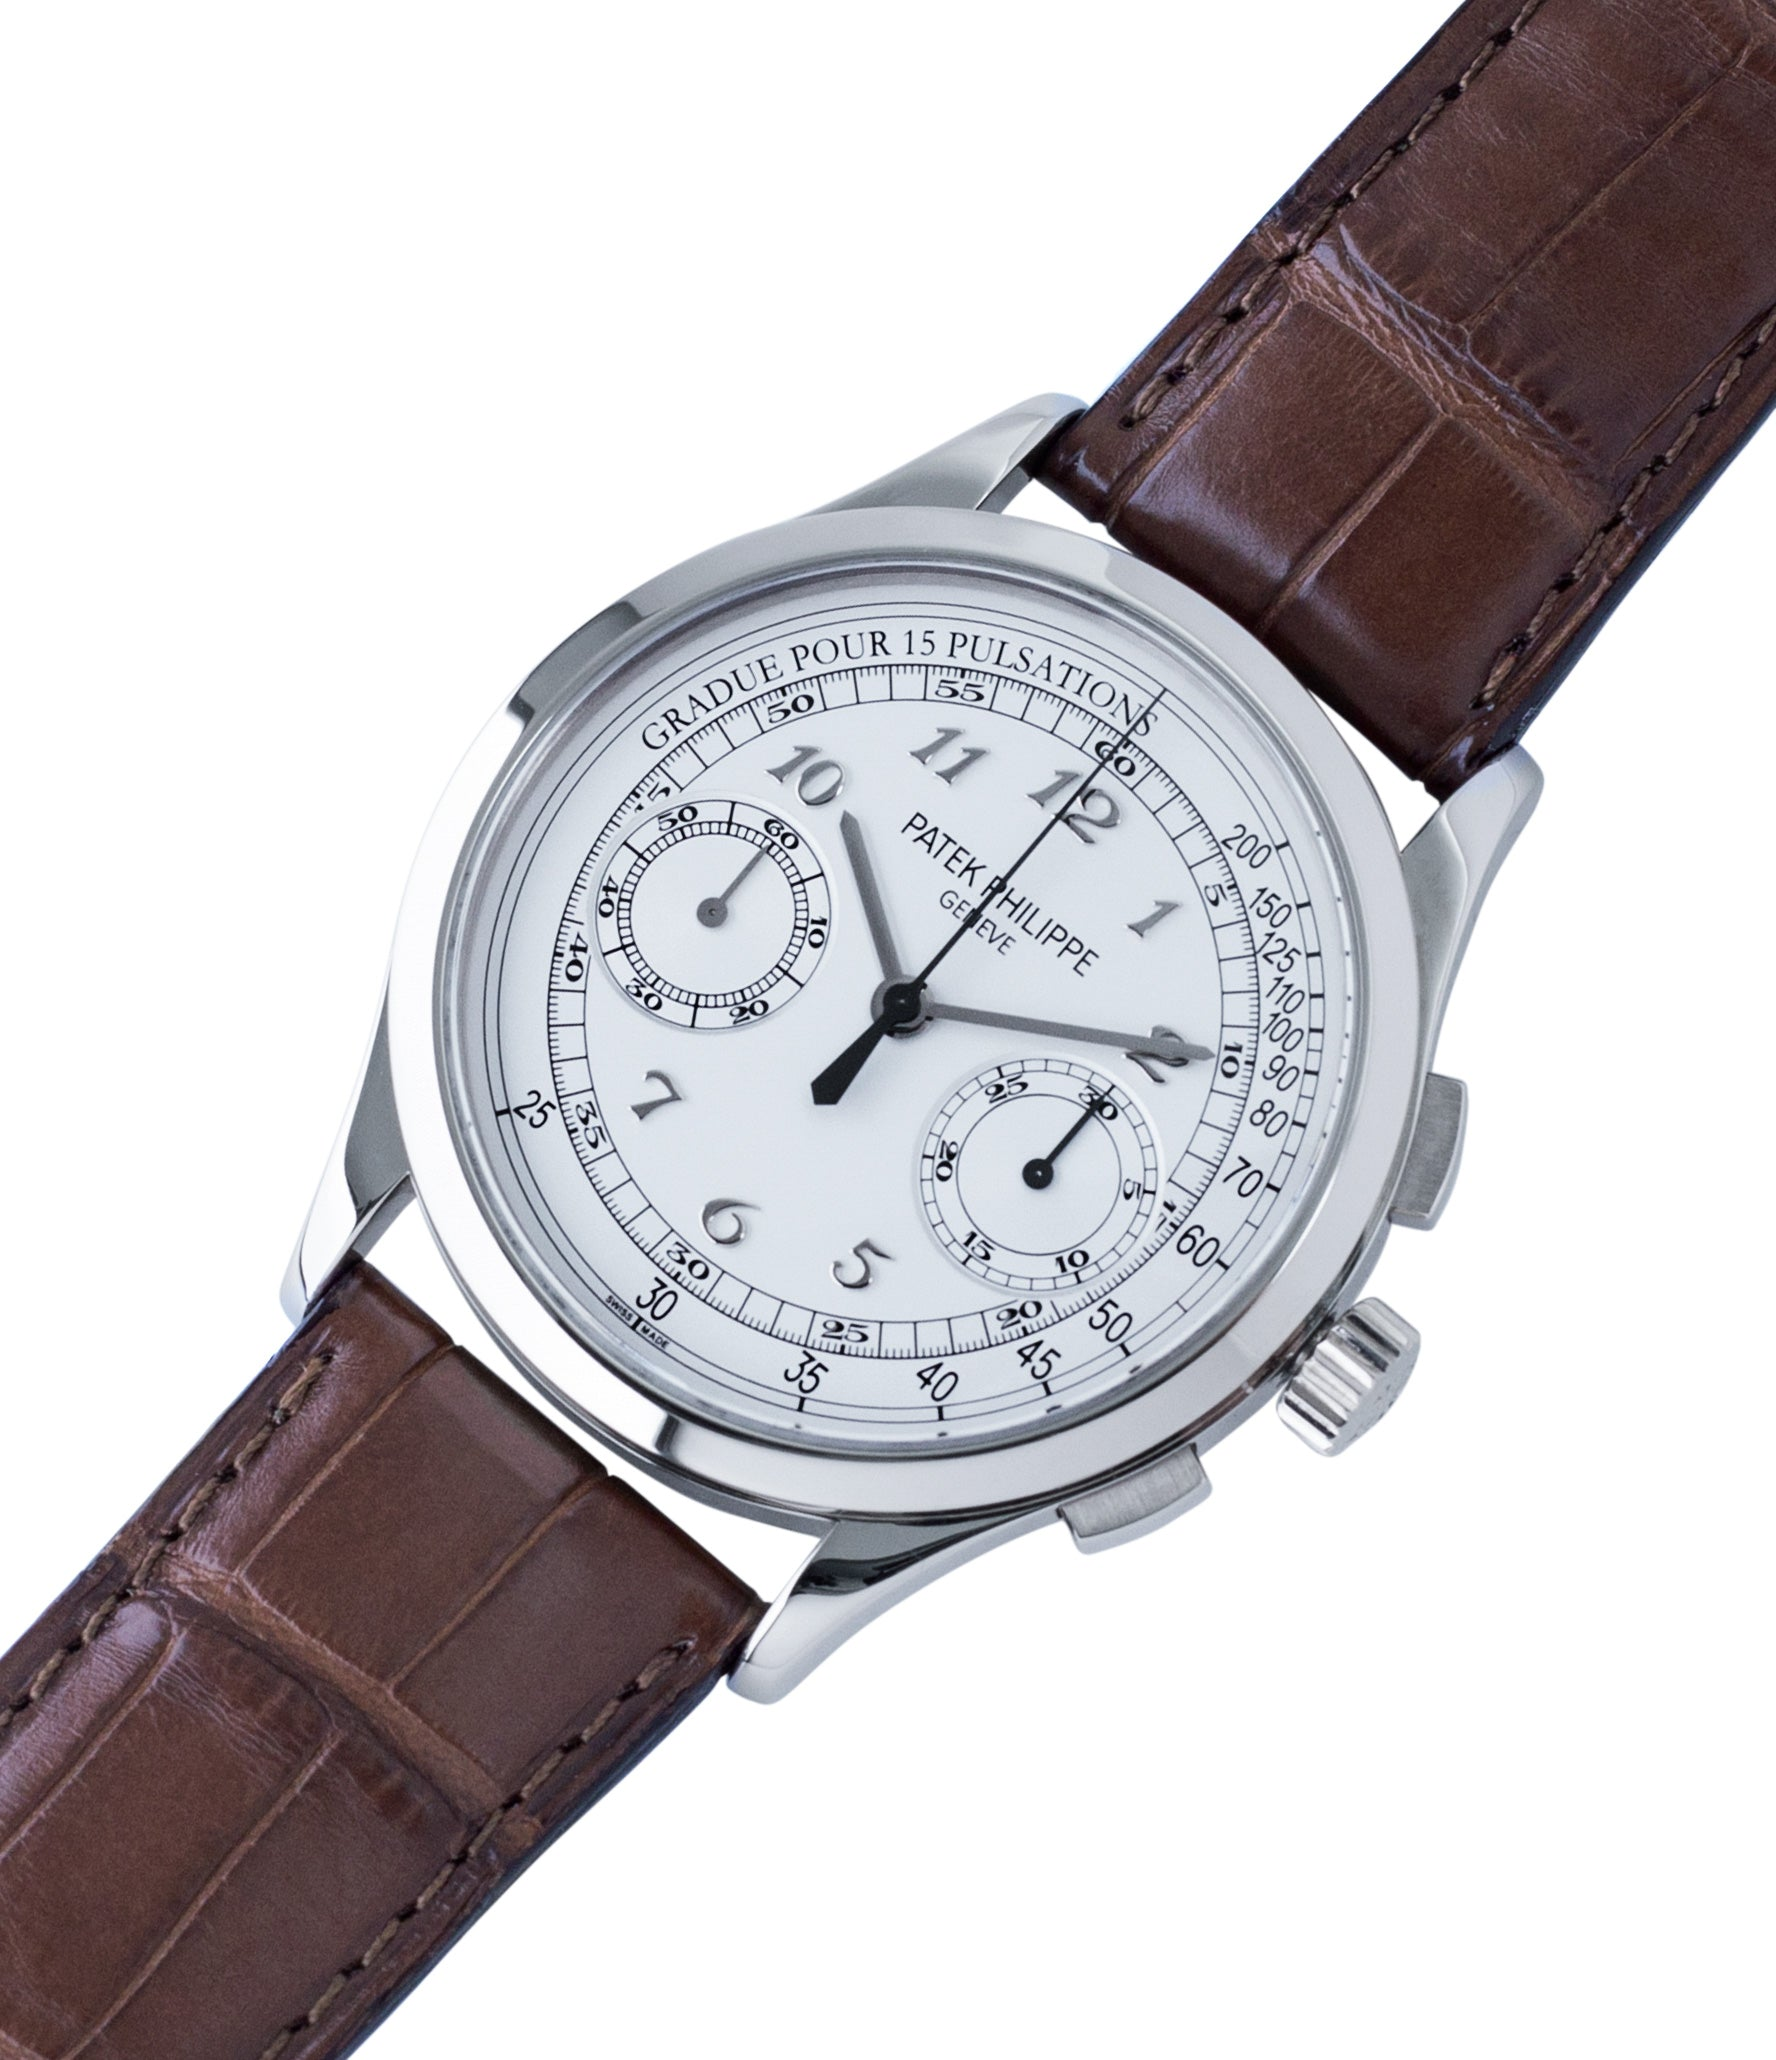 for sale Patek Philippe 5170G-001 grey gold dress Chronograph Pulsation Scale preowned watch at A Collected Man London rare watch specialist in United Kingdom